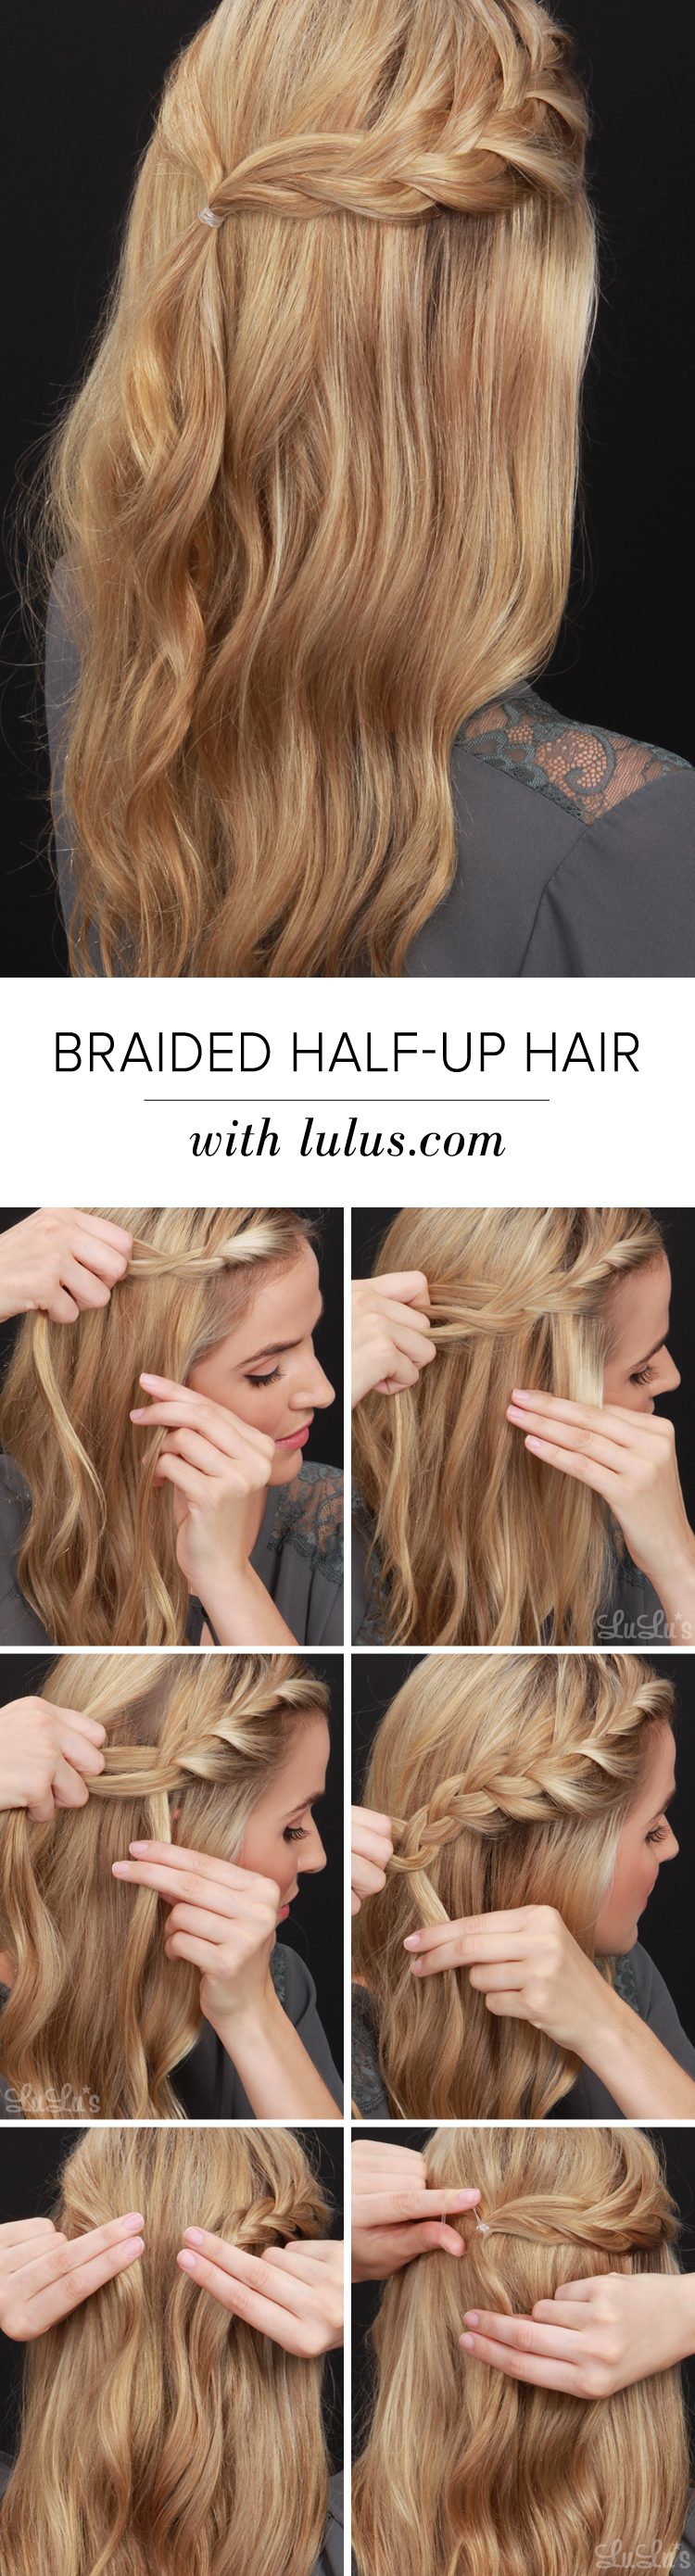 Lulus HowTo HalfUp Braided Hair Tutorial  Luluscom